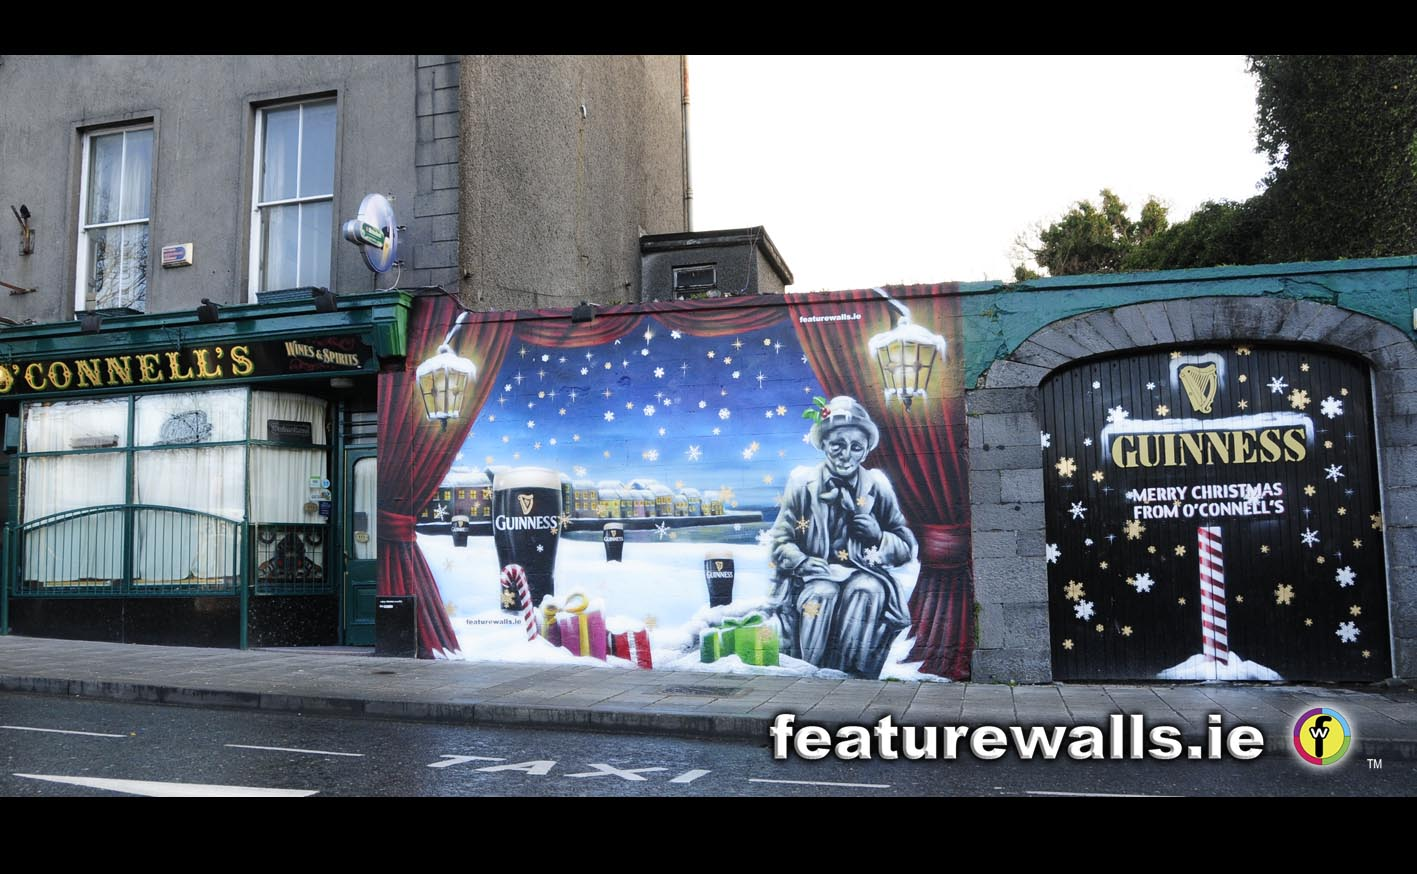 ... Advertising Branding Mural Featurewalls.ie Hand Painted For Guinness  Using Graffiti Paint At The Weekend, We Think It Really Is A Galway Christmas  Scene ...